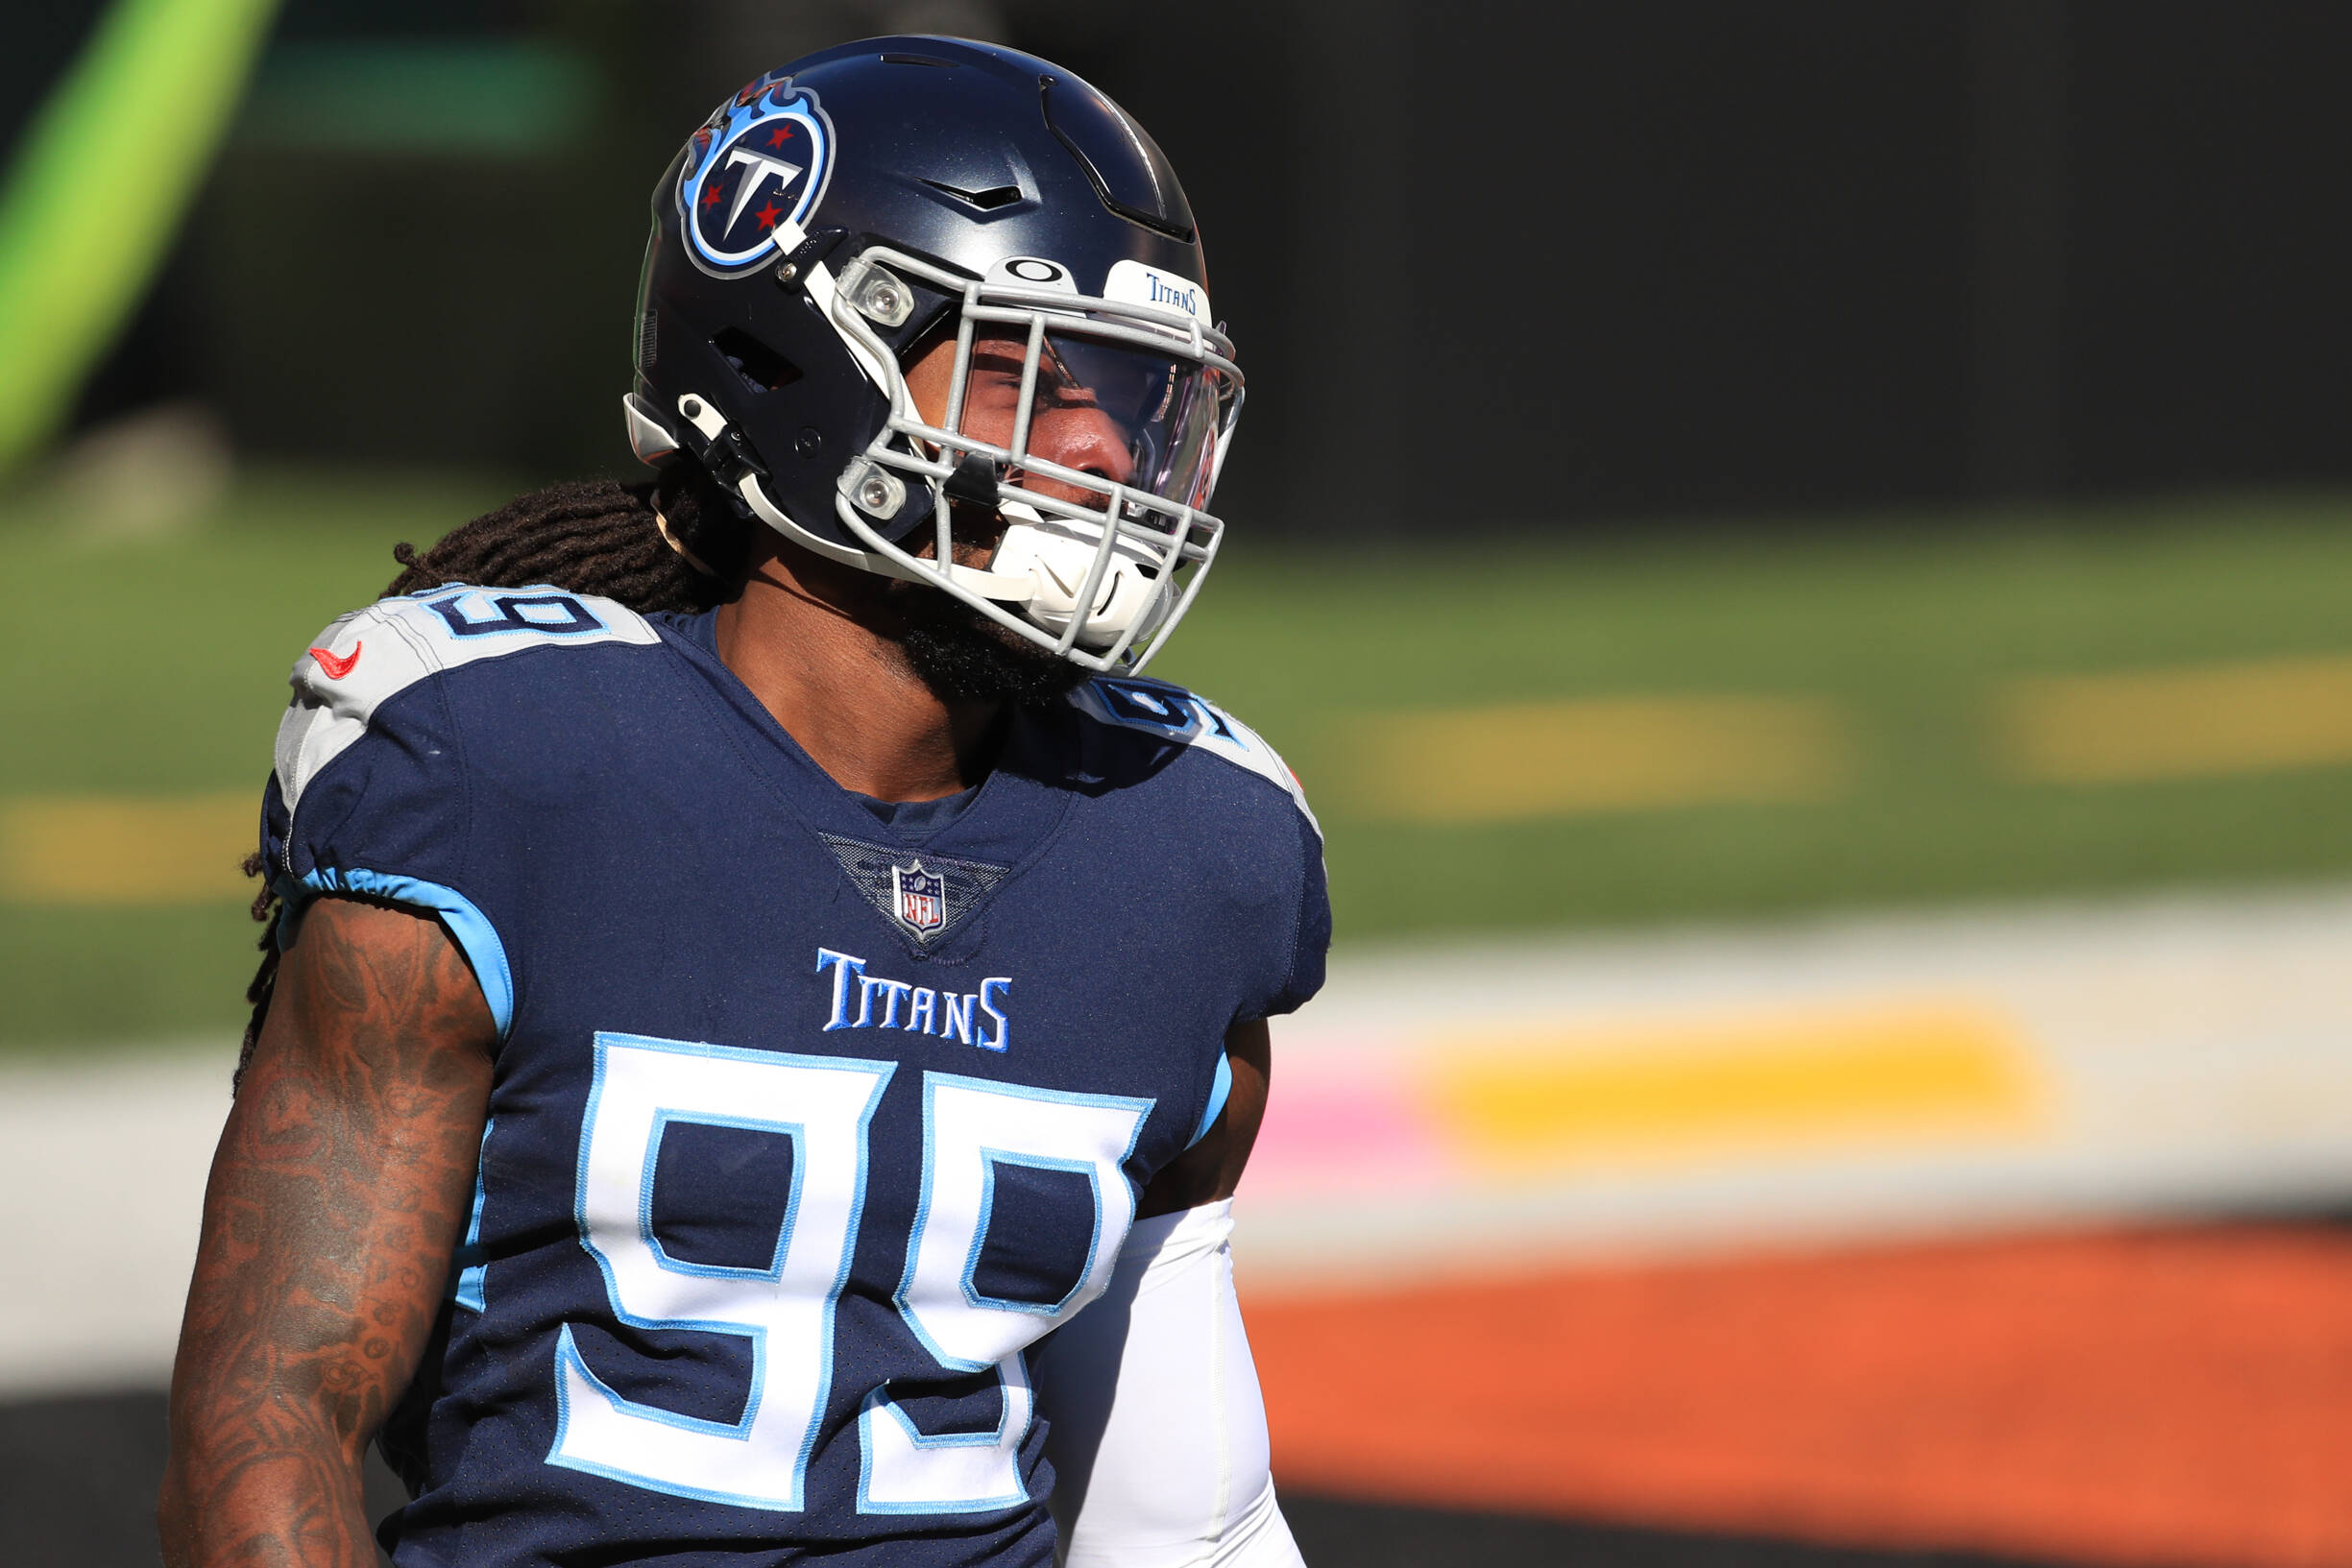 CINCINNATI, OH - NOVEMBER 01: Tennessee Titans outside linebacker Jadeveon Clowney (99) warms up before the game against